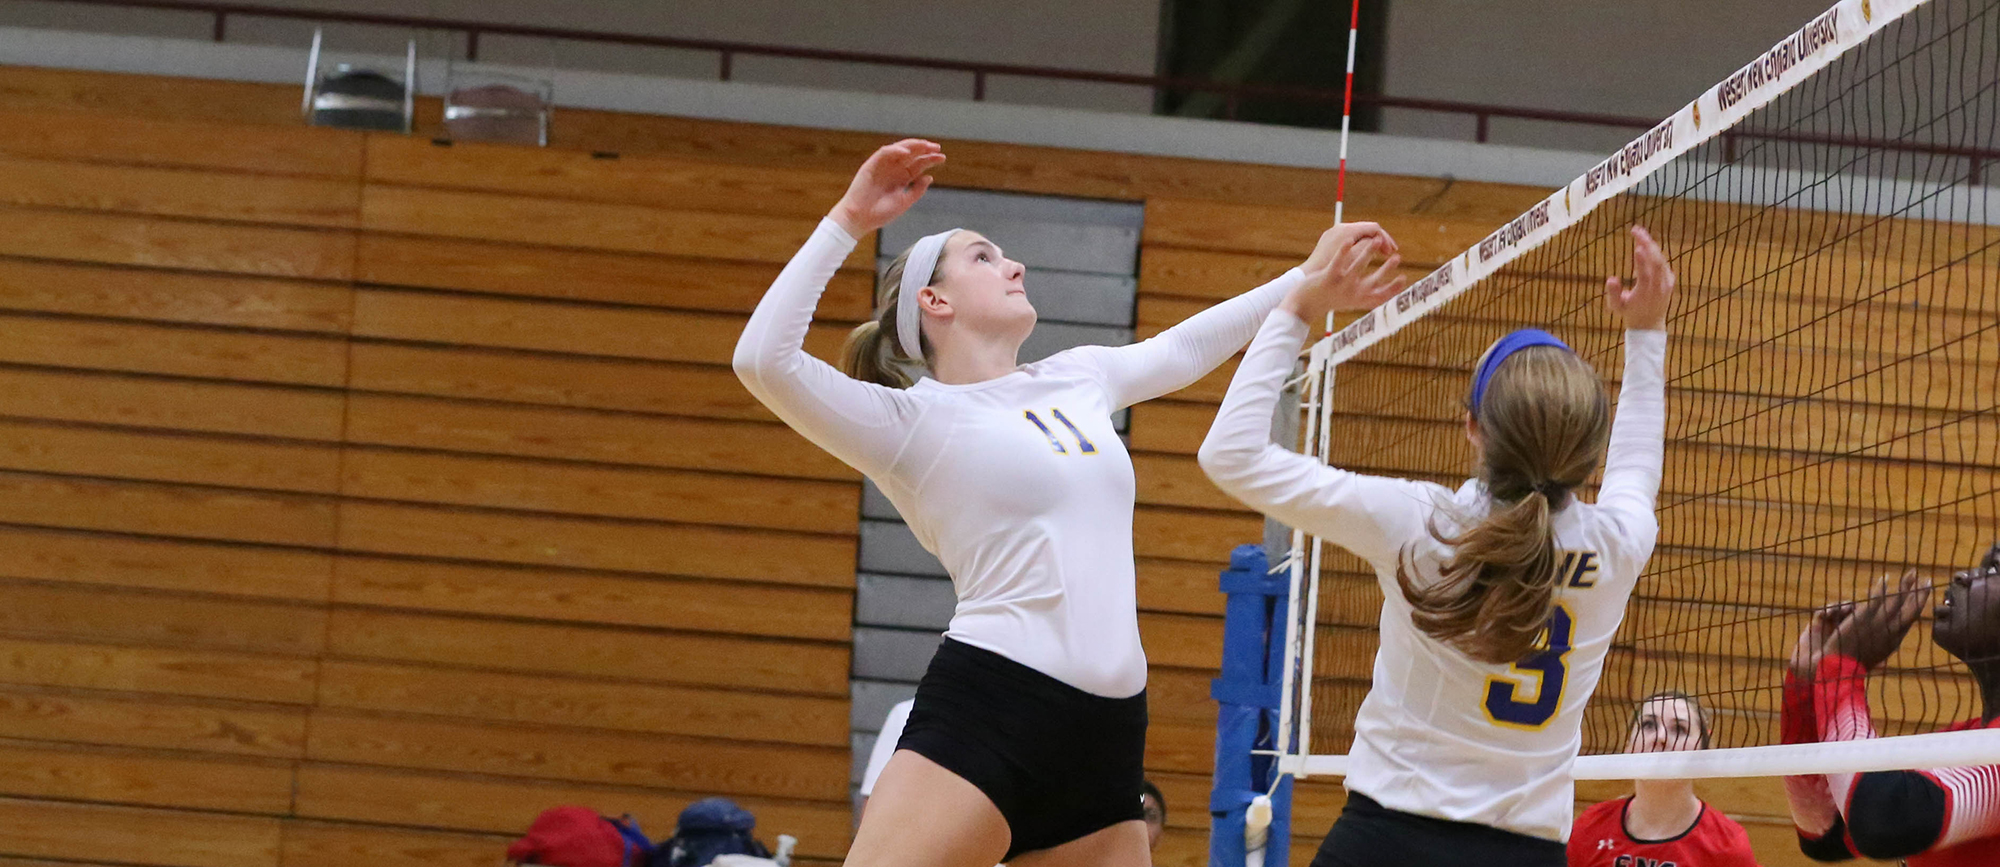 Junior middle blocker Cassie Holmes recorded four kills against Wisconsin-Eau Claire on Saturday at the Kean Invitational (Photo by Riccio Productions)